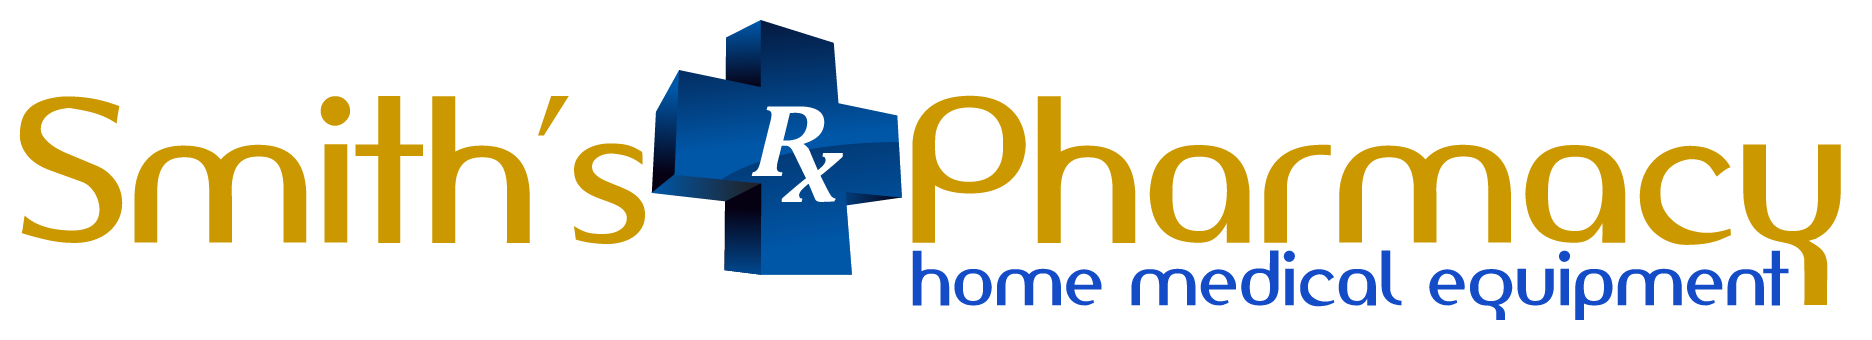 Smith's Pharmacy and Home Health